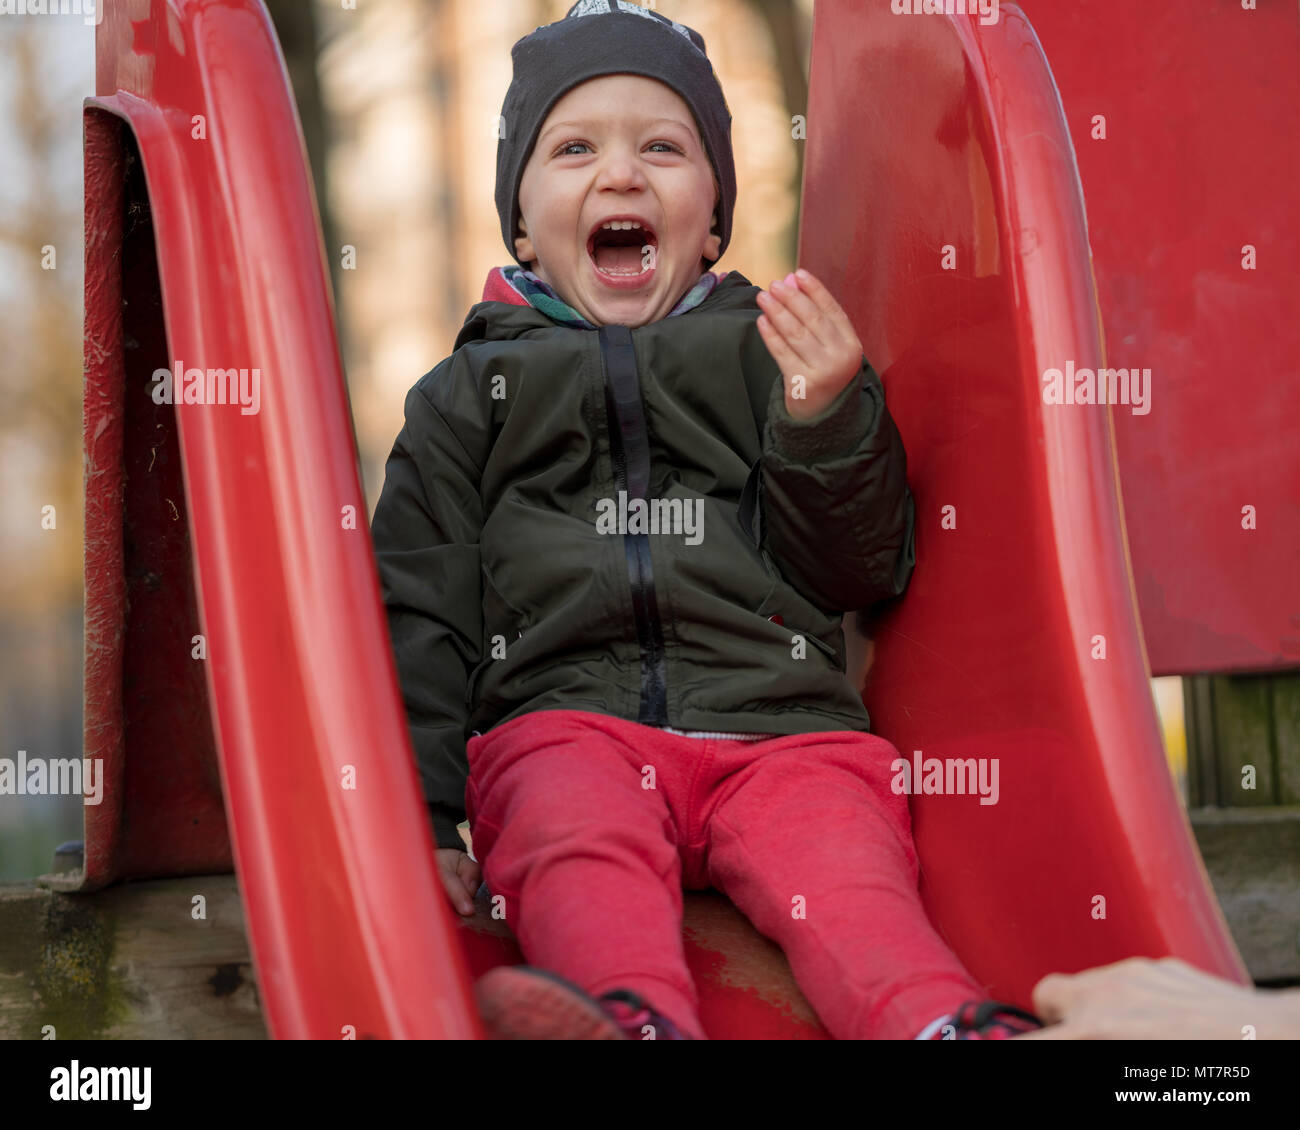 Happy baby boy with a cap laughing loudly sitting on a children slide at kid's playground. Active childhood concept - Stock Image